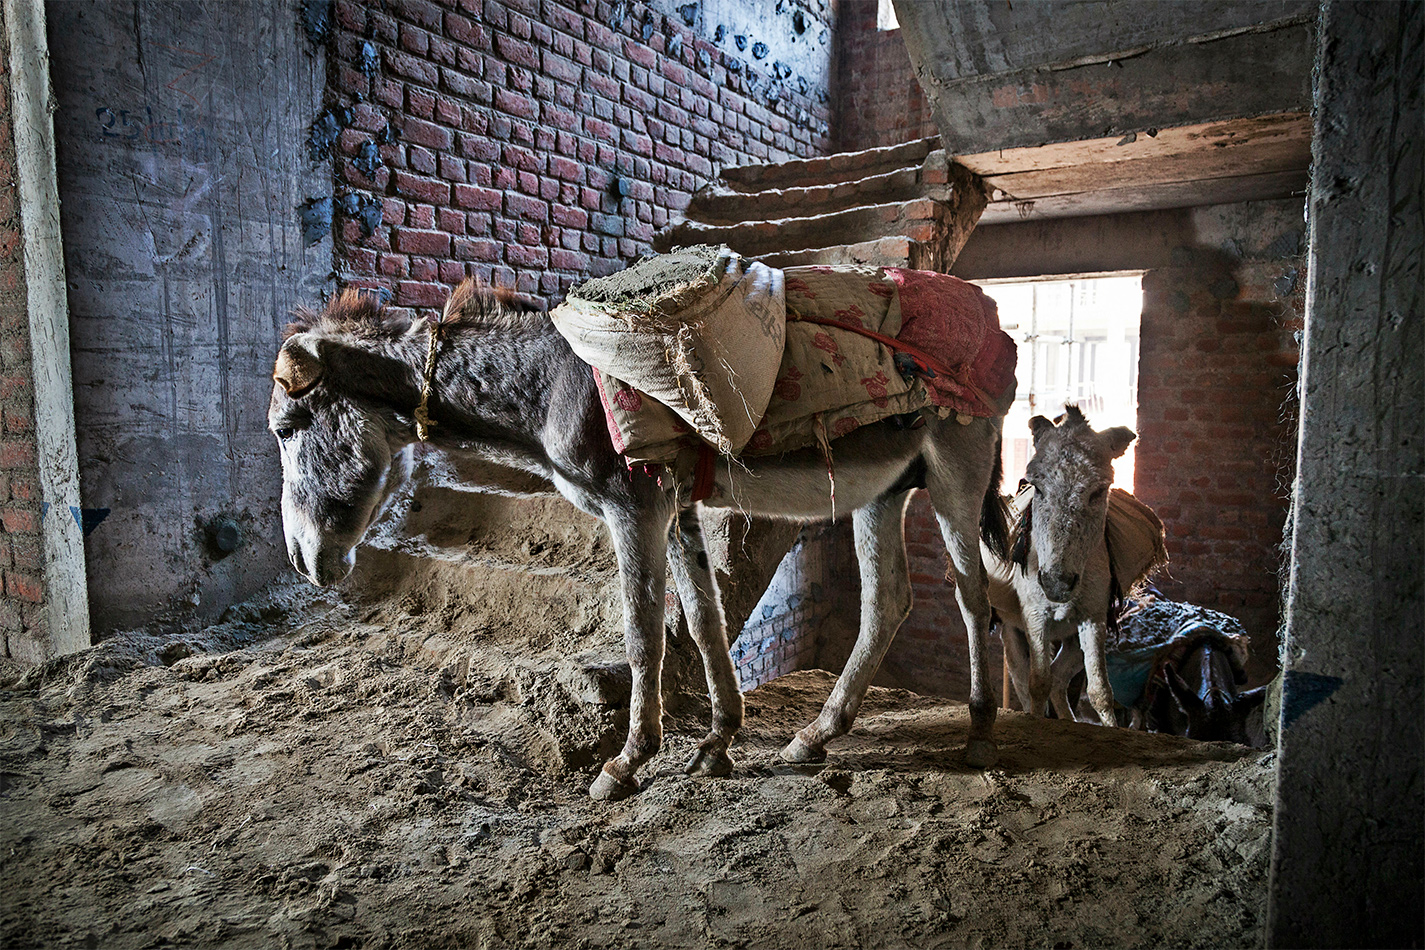 Donkeys being used in construction